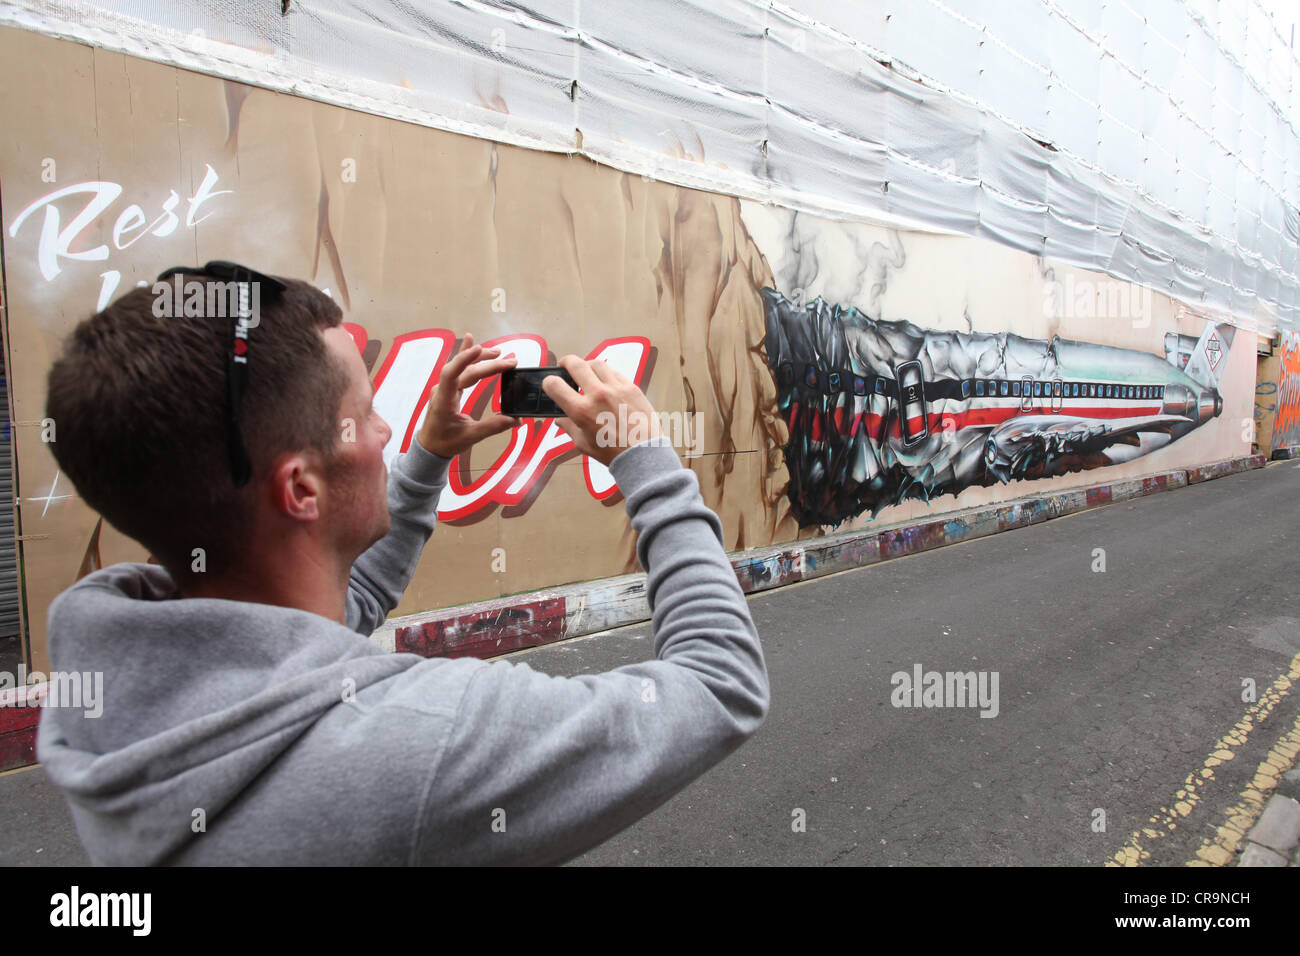 Graffiti tribute to Beastie Boy Adam Yauch,known as MCA who died aged 47 on May 4 2012. Stock Photo